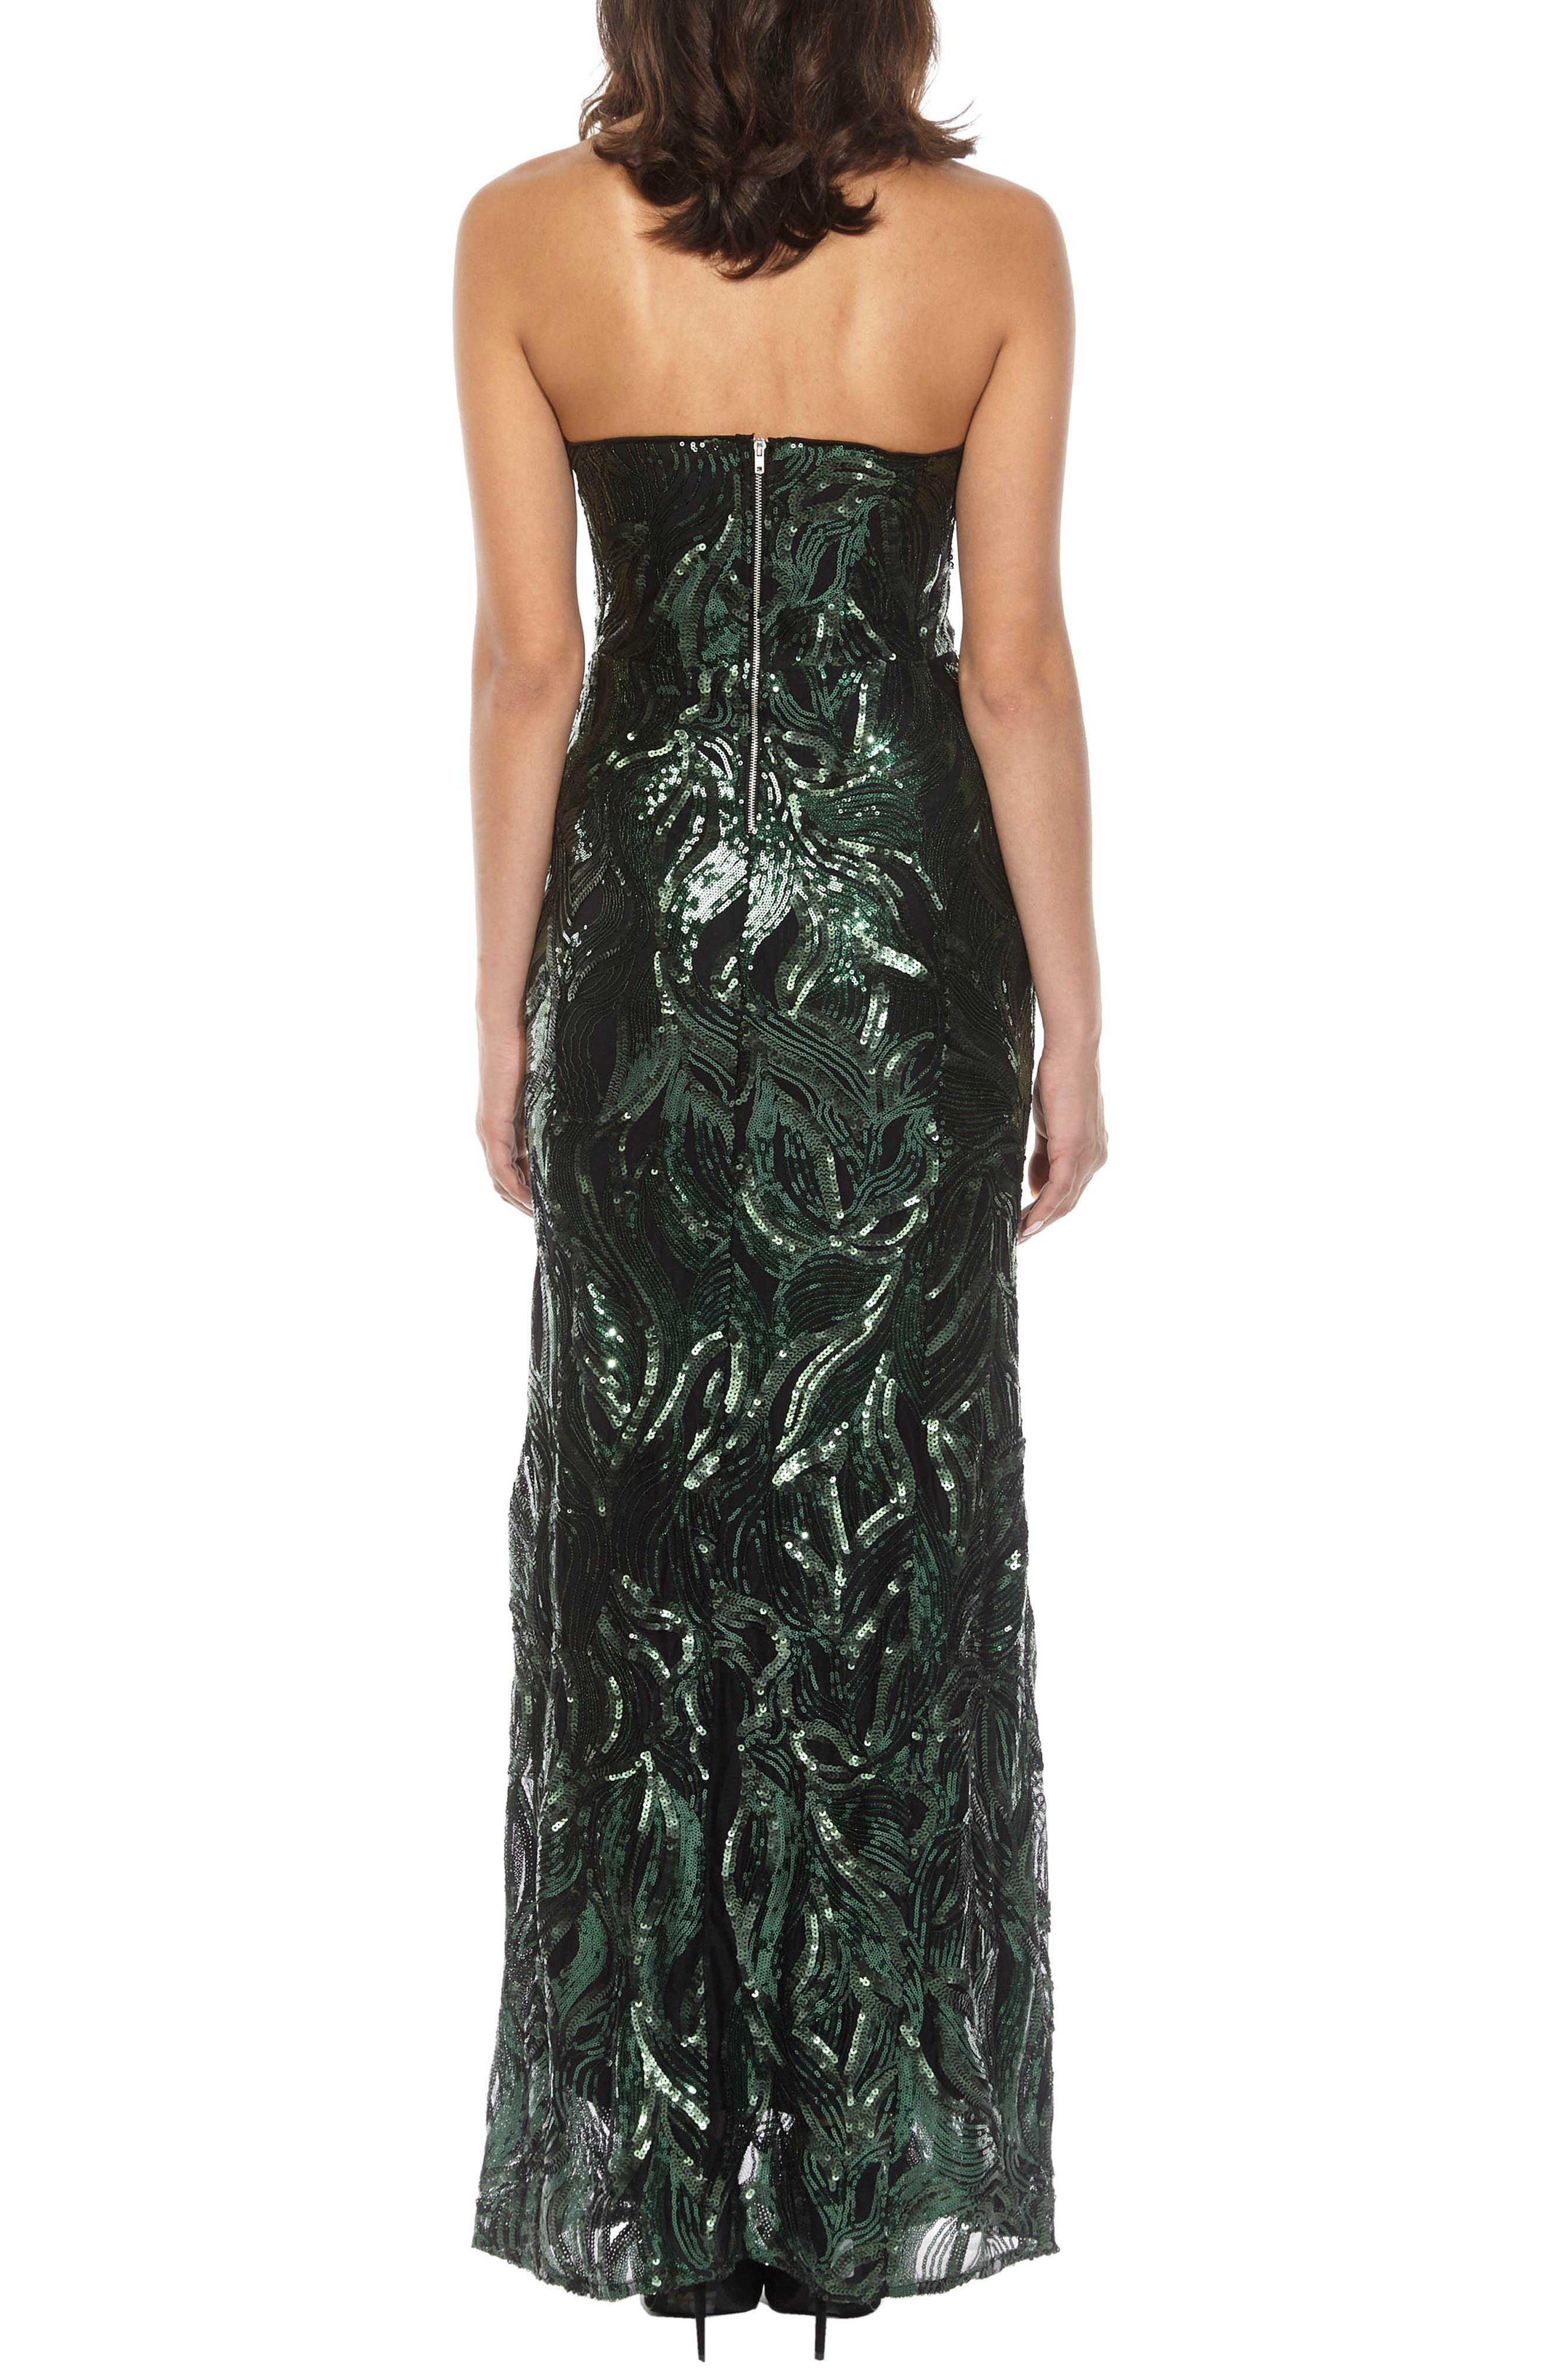 Gaynor Sequin Strapless Maxi Dress,                             Alternate thumbnail 2, color,                             Green